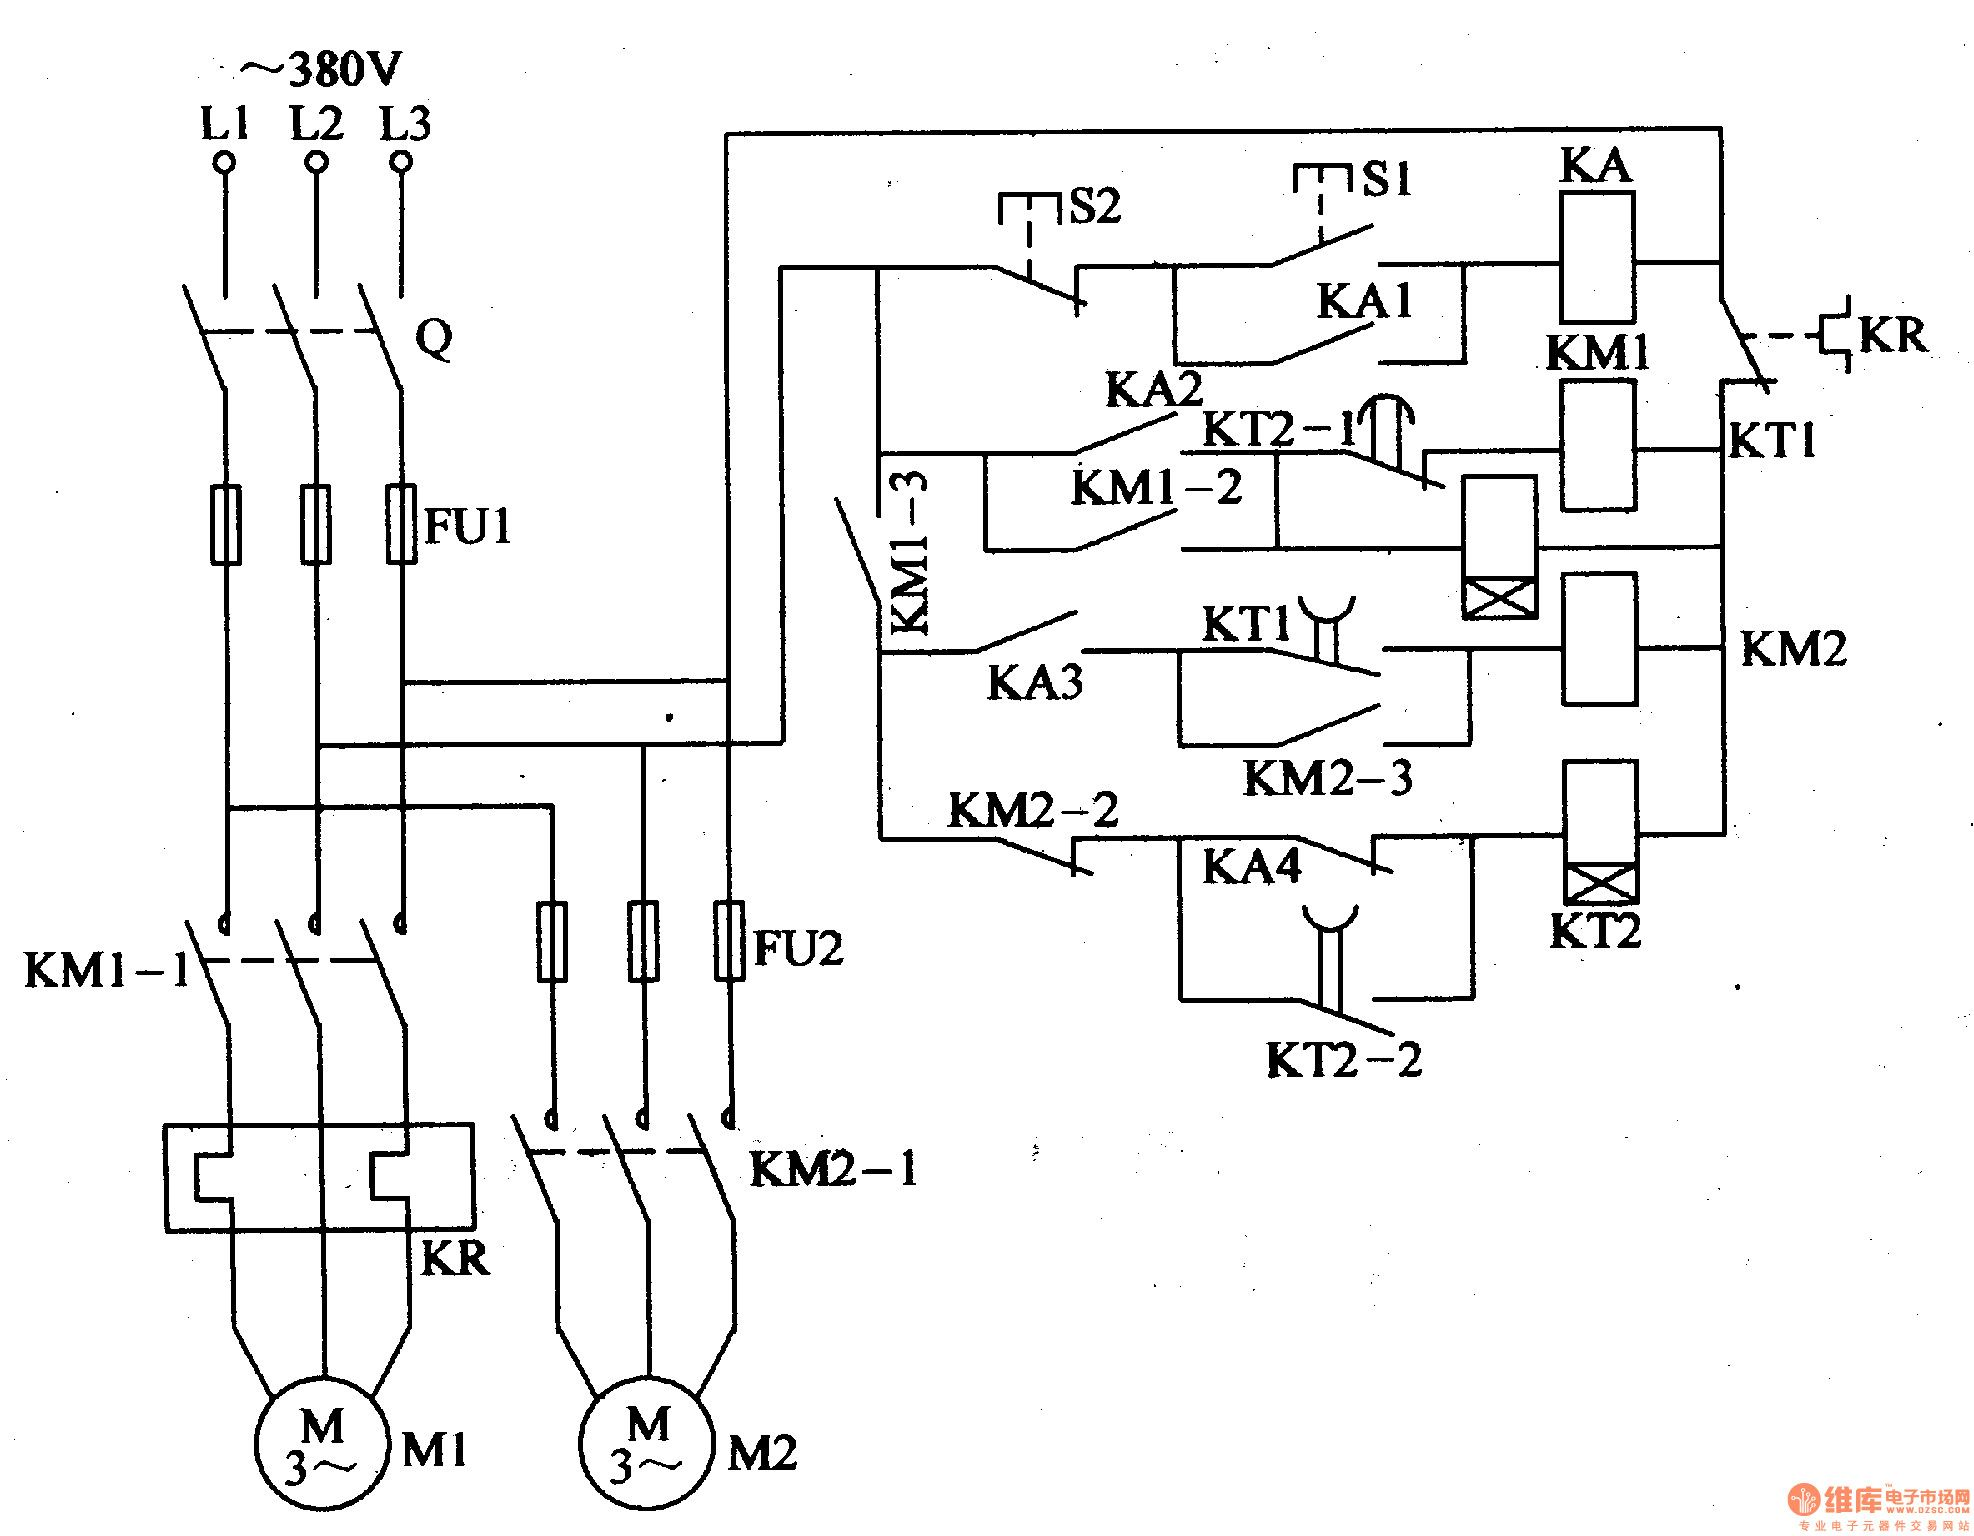 medium resolution of square d panelboard wiring diagram wiring diagrams trigg square d panelboard wiring diagram